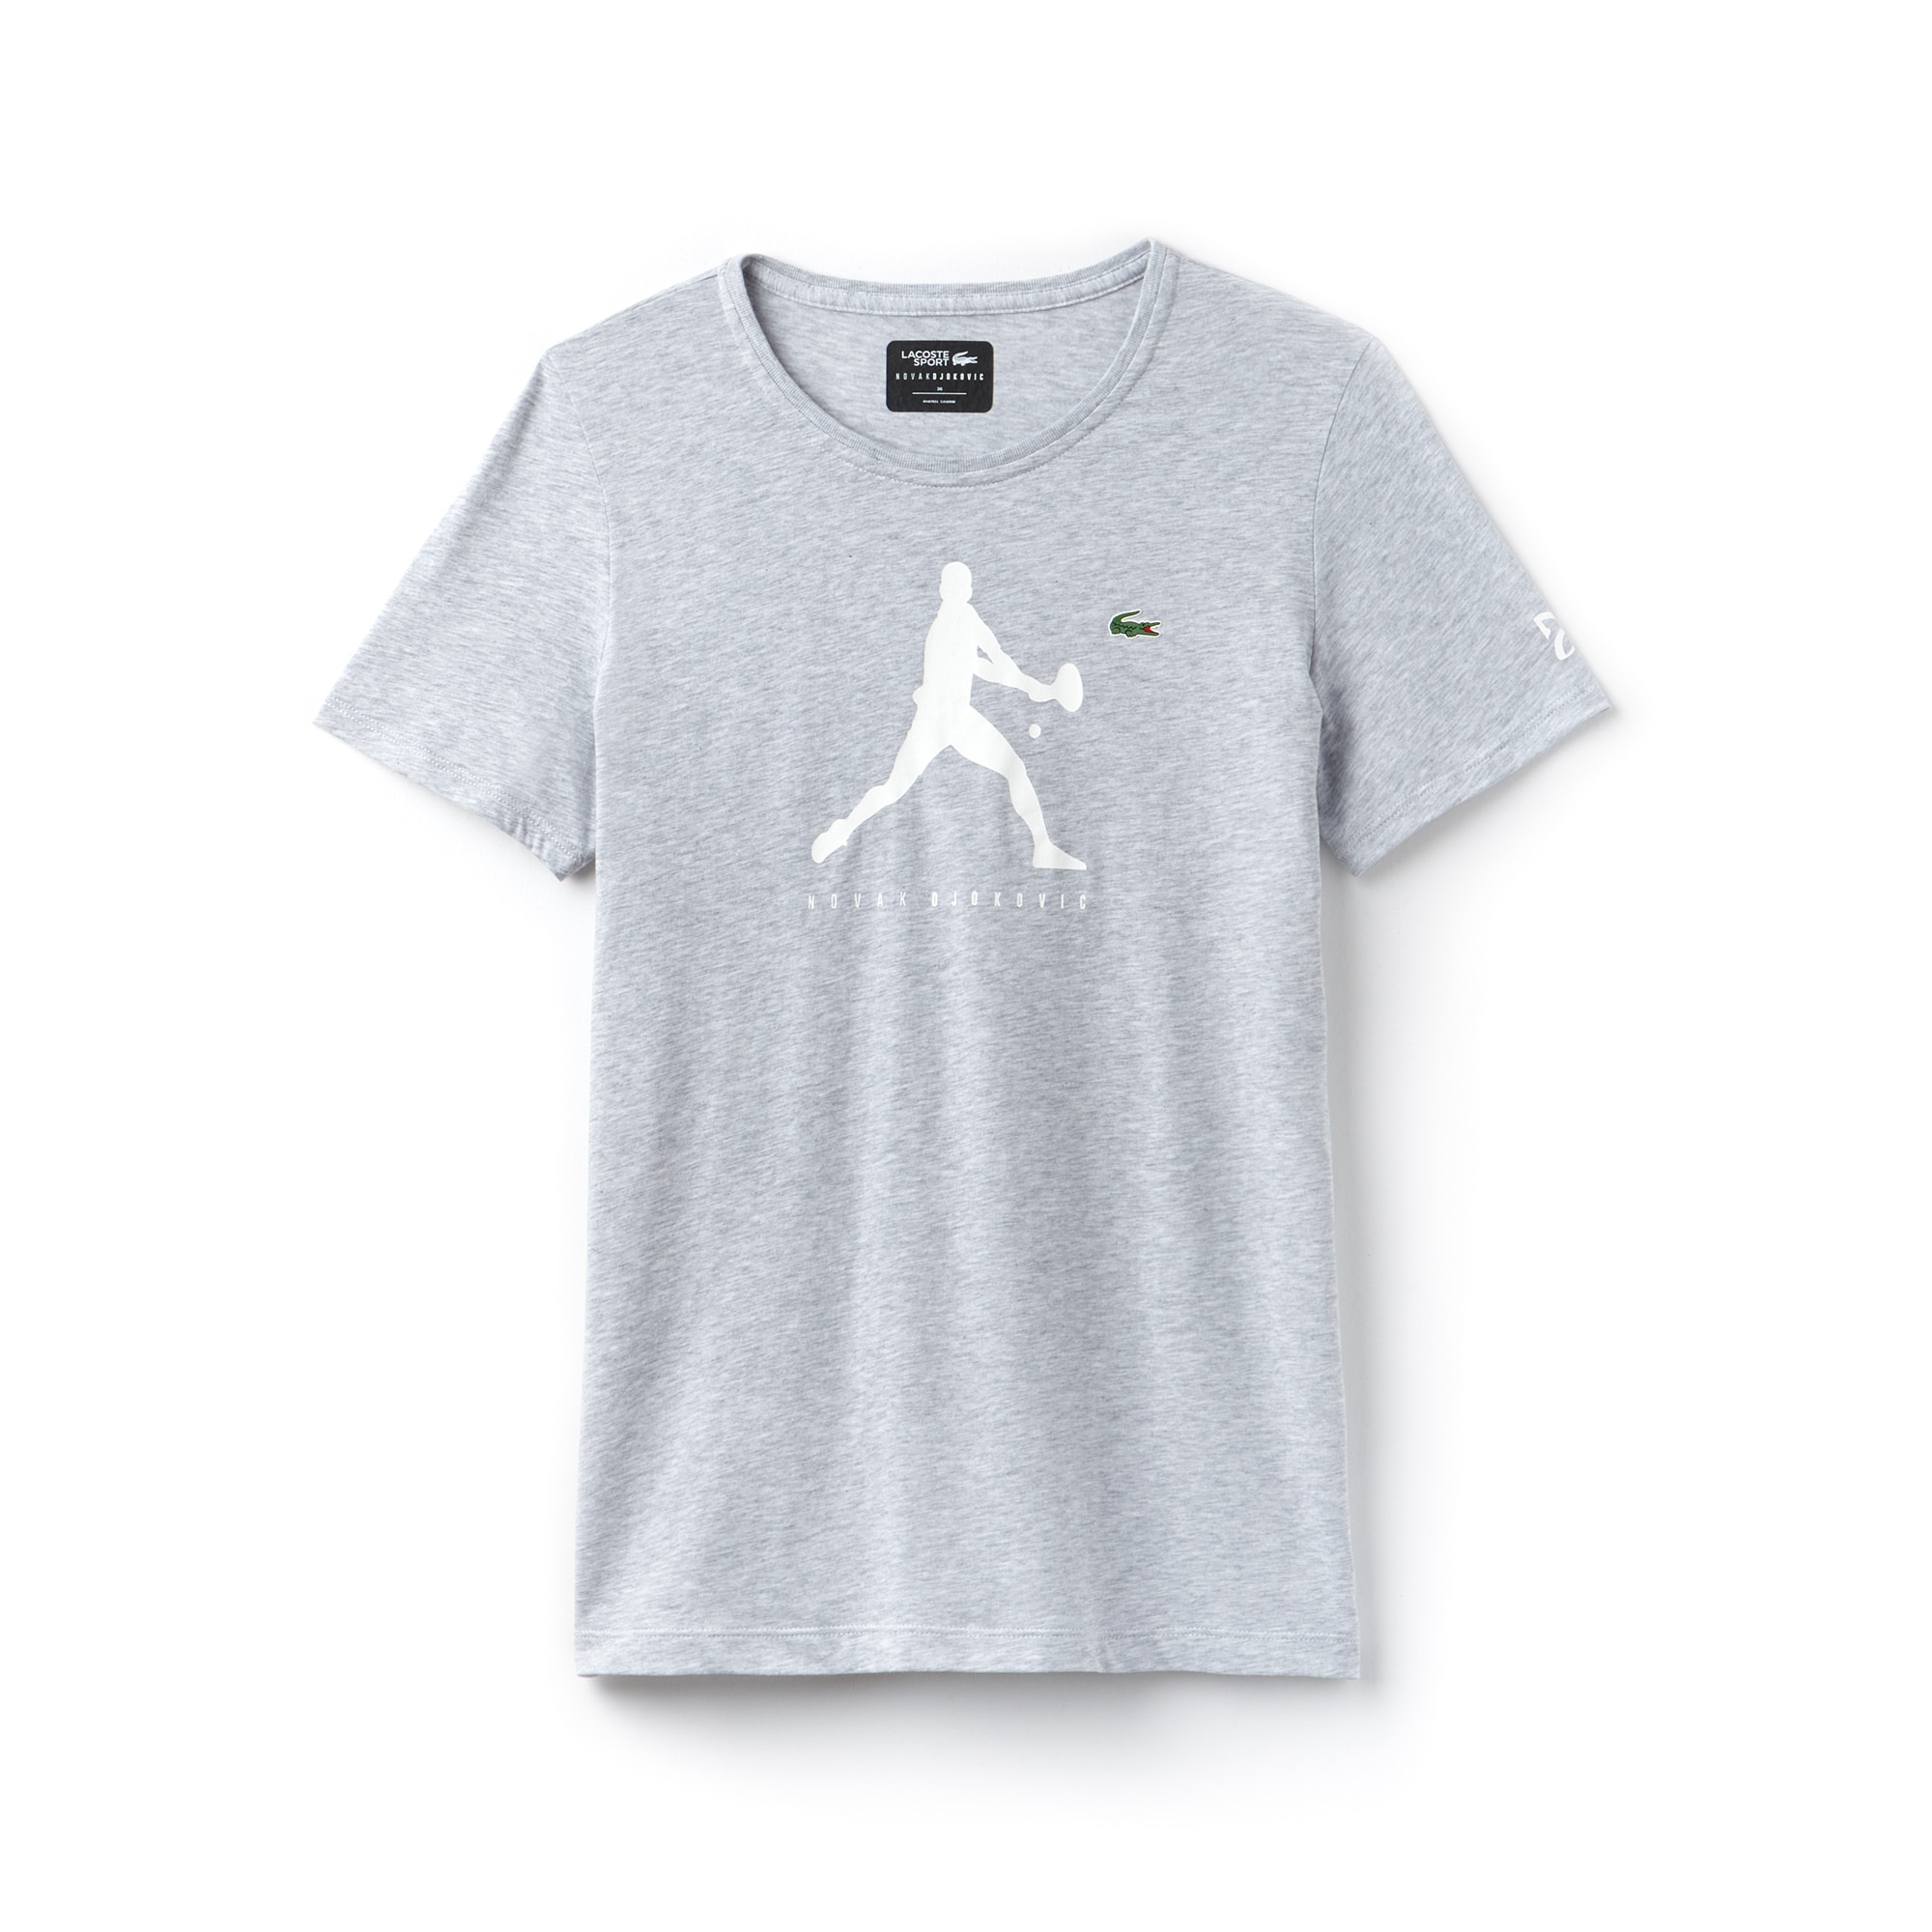 T-shirt girocollo Lacoste SPORT COLLEZIONE NOVAK DJOKOVIC SUPPORT WITH STYLE in jersey tinta unita con stampa